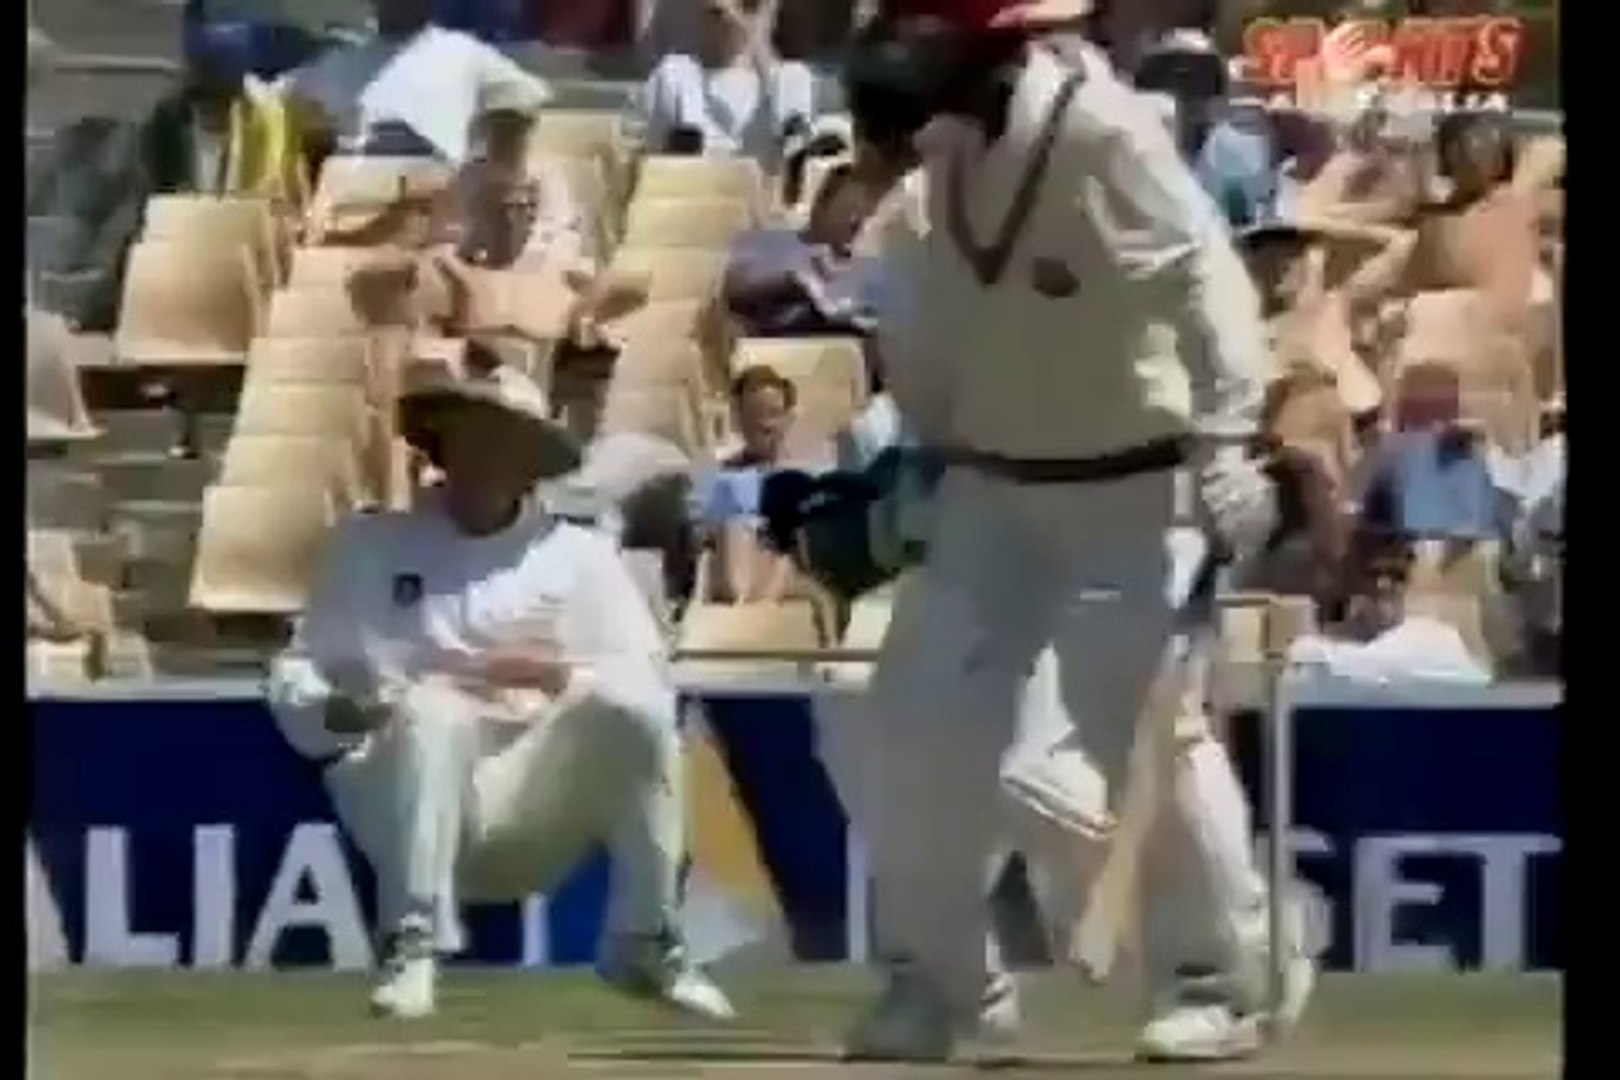 BEST CATCH EVER Mark Taylor takes a crazy catch off Michael Bevan's bowling_x264